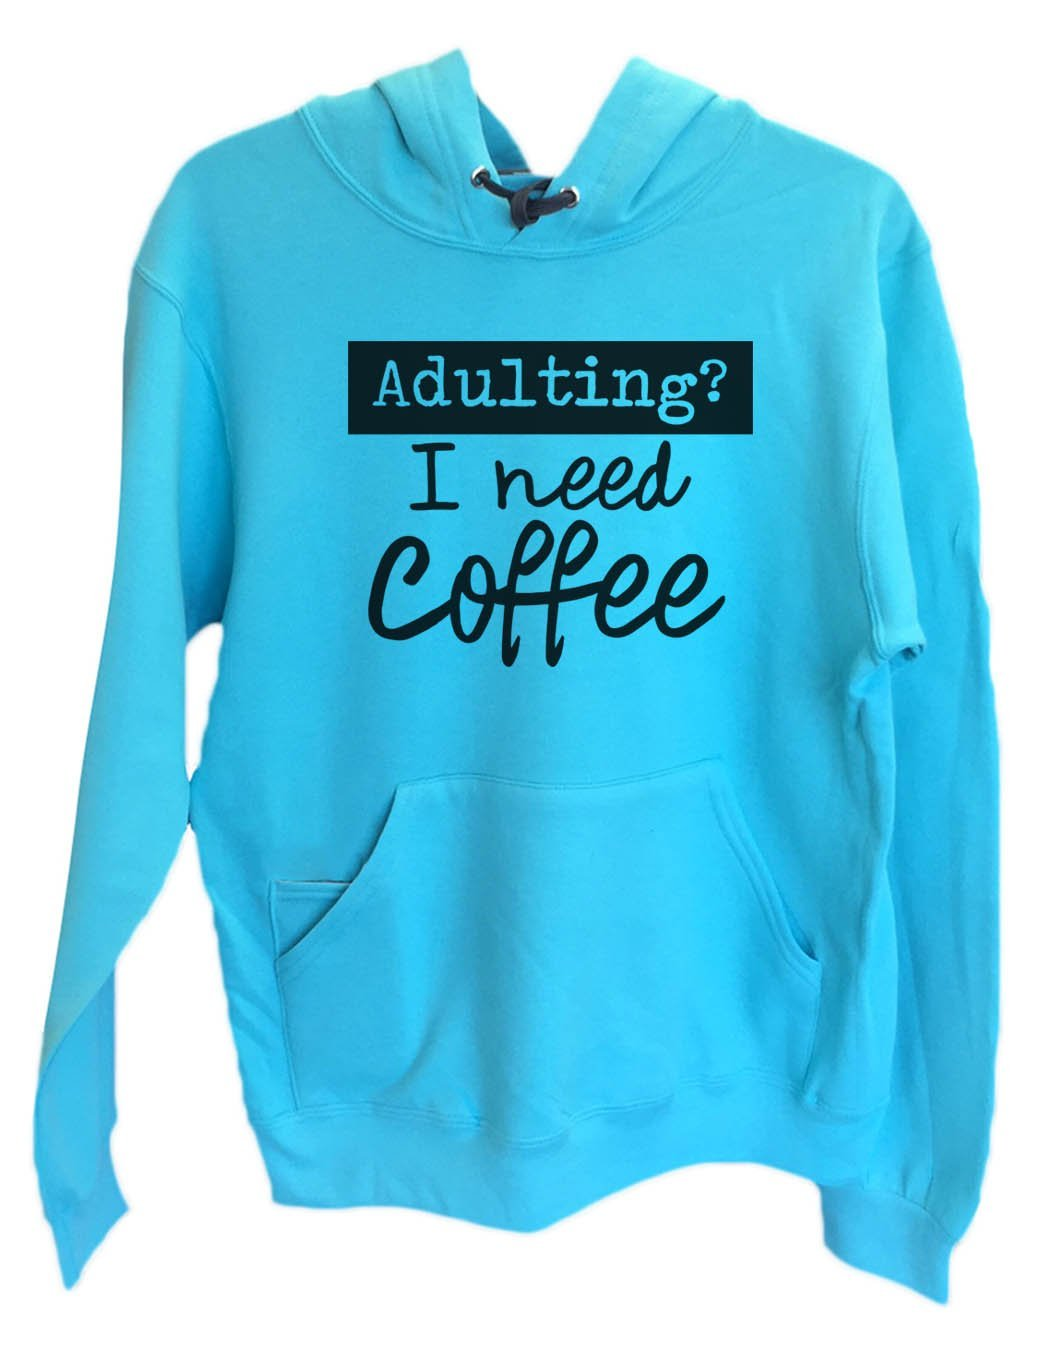 UNISEX HOODIE - Adulting? I Need Coffee - FUNNY MENS AND WOMENS HOODED SWEATSHIRTS - 2207 Funny Shirt Small / Turquoise